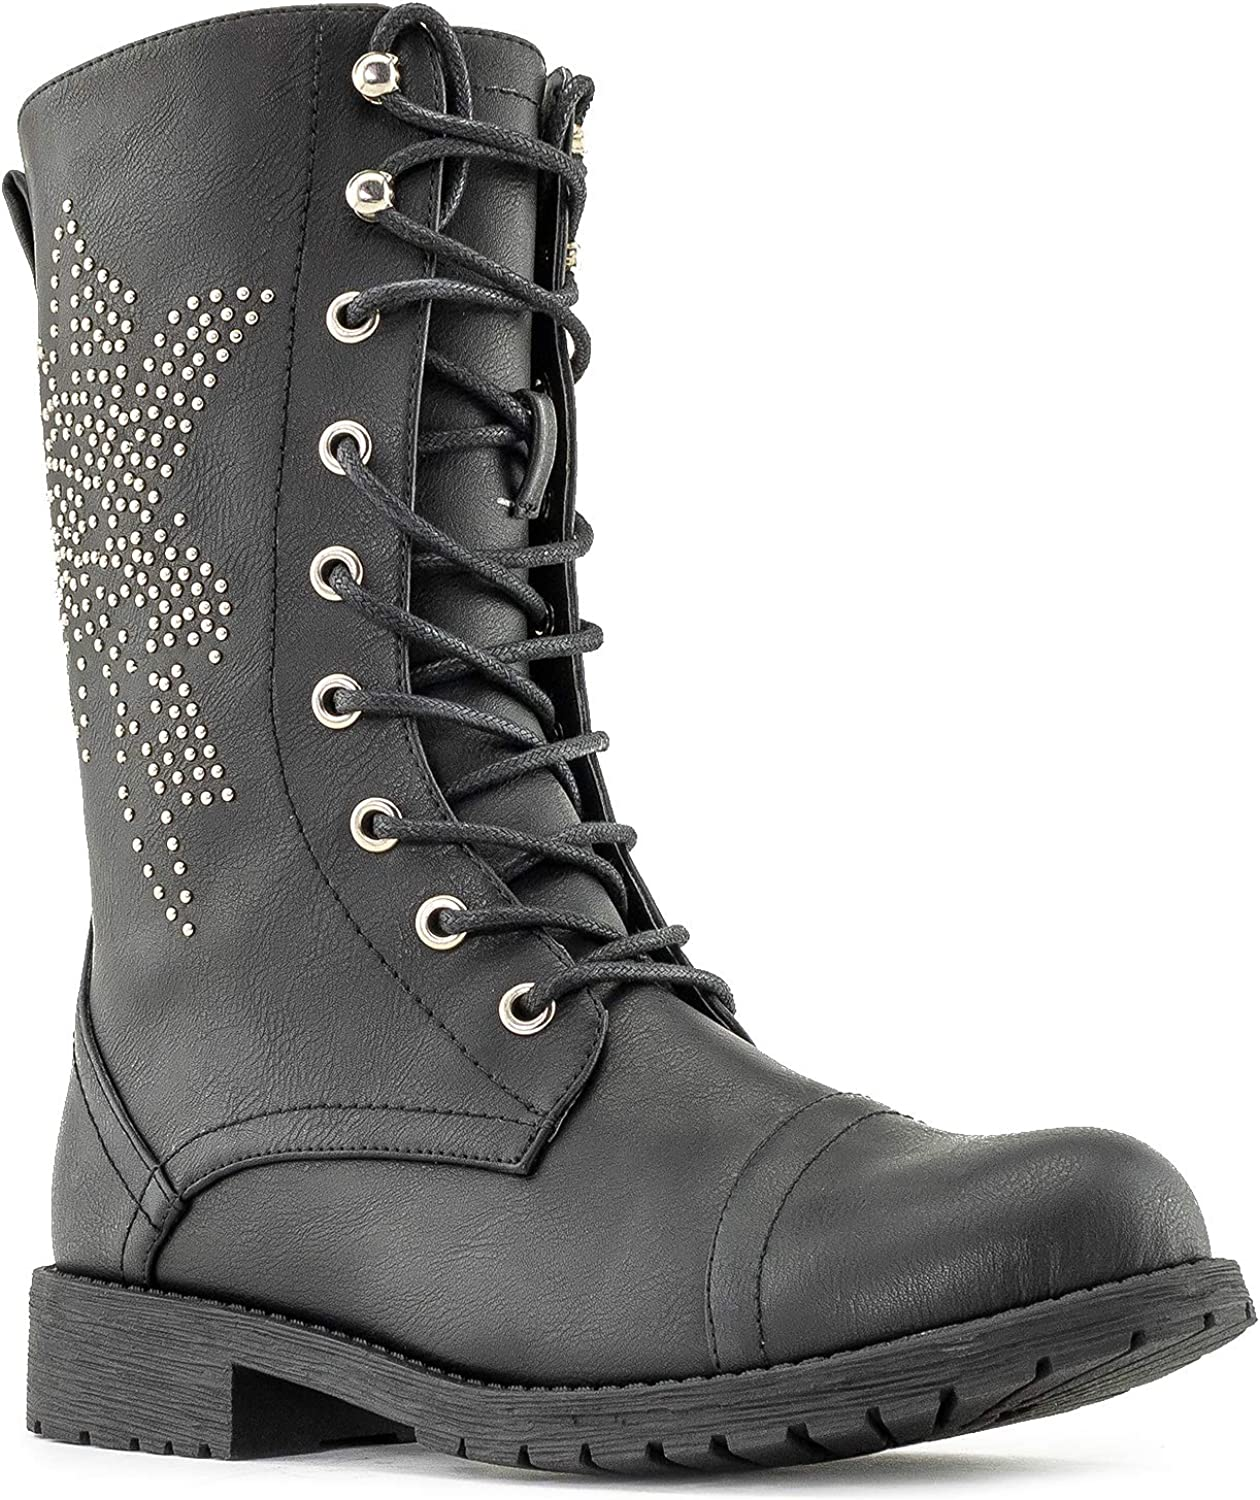 Nature Breeze Women's Military Combat Lace Up Mid Calf Boots